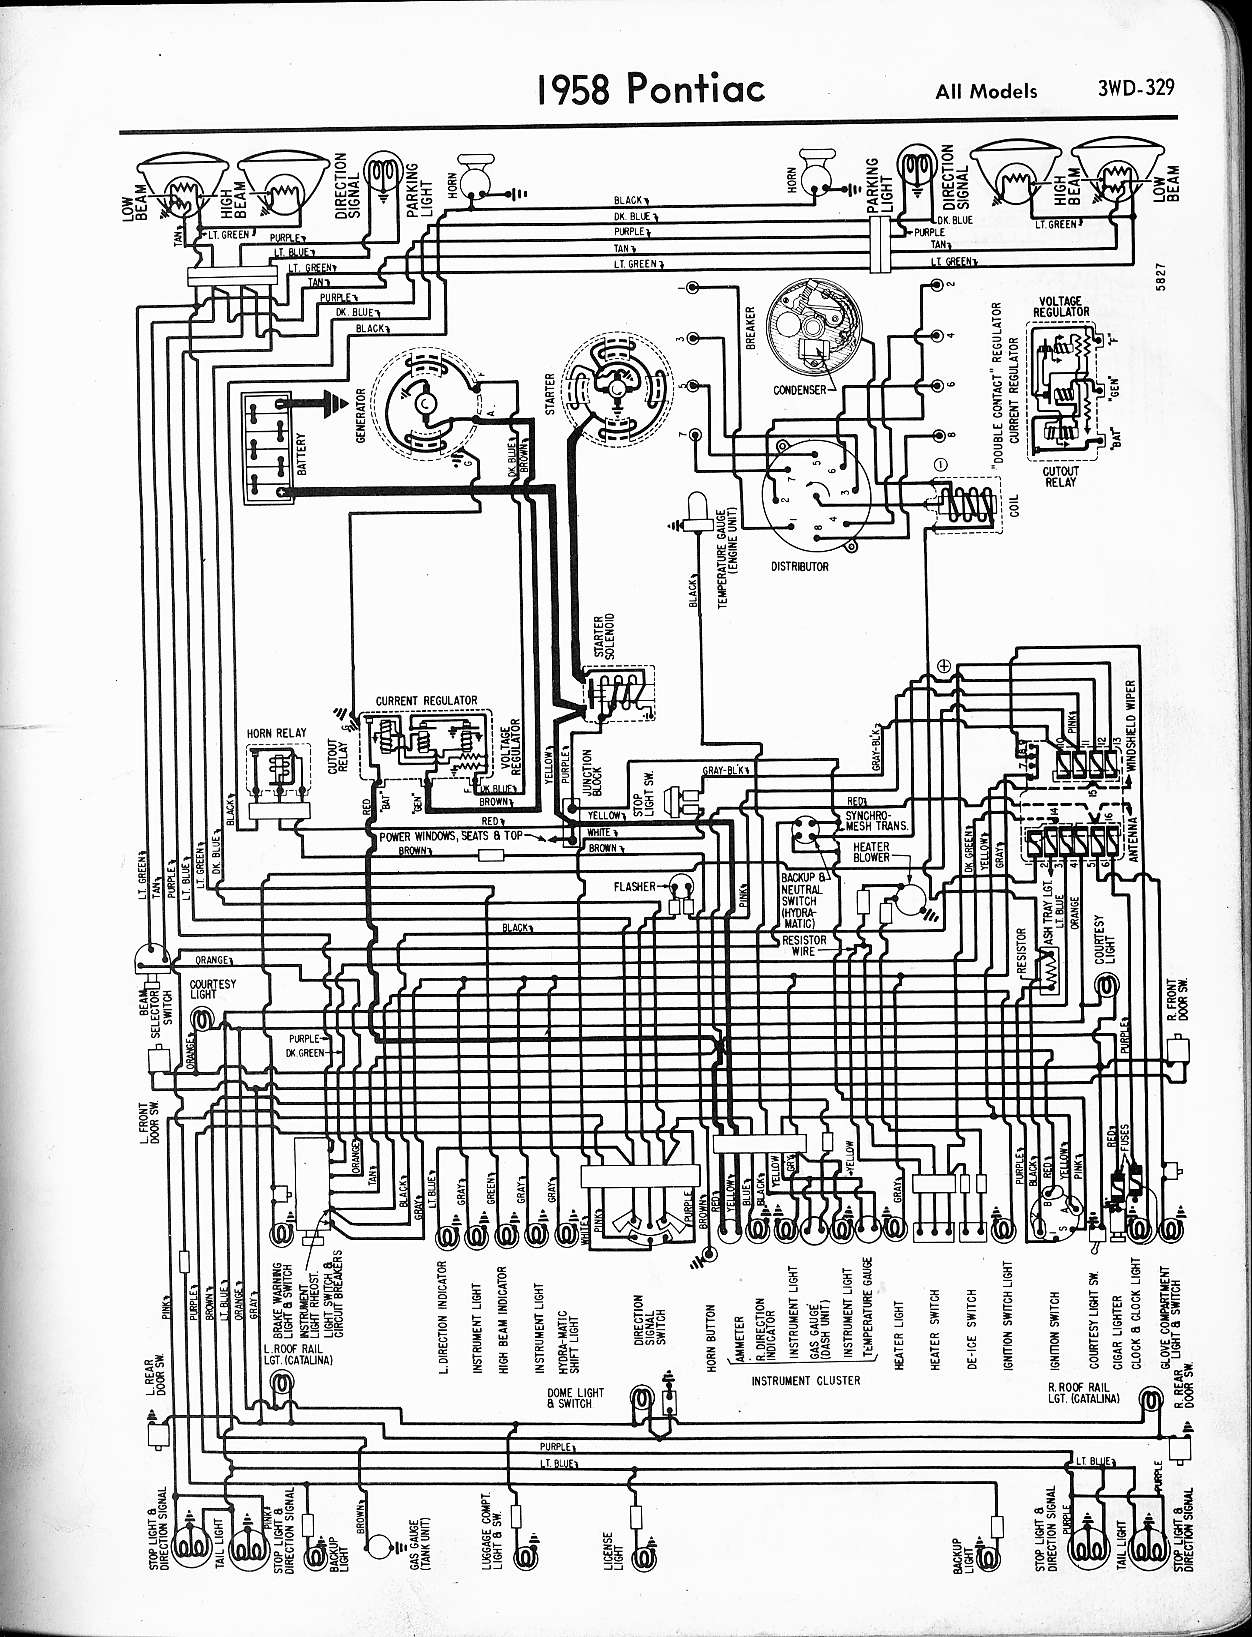 1966 Pontiac Wiring Diagrams - Wiring Diagram •